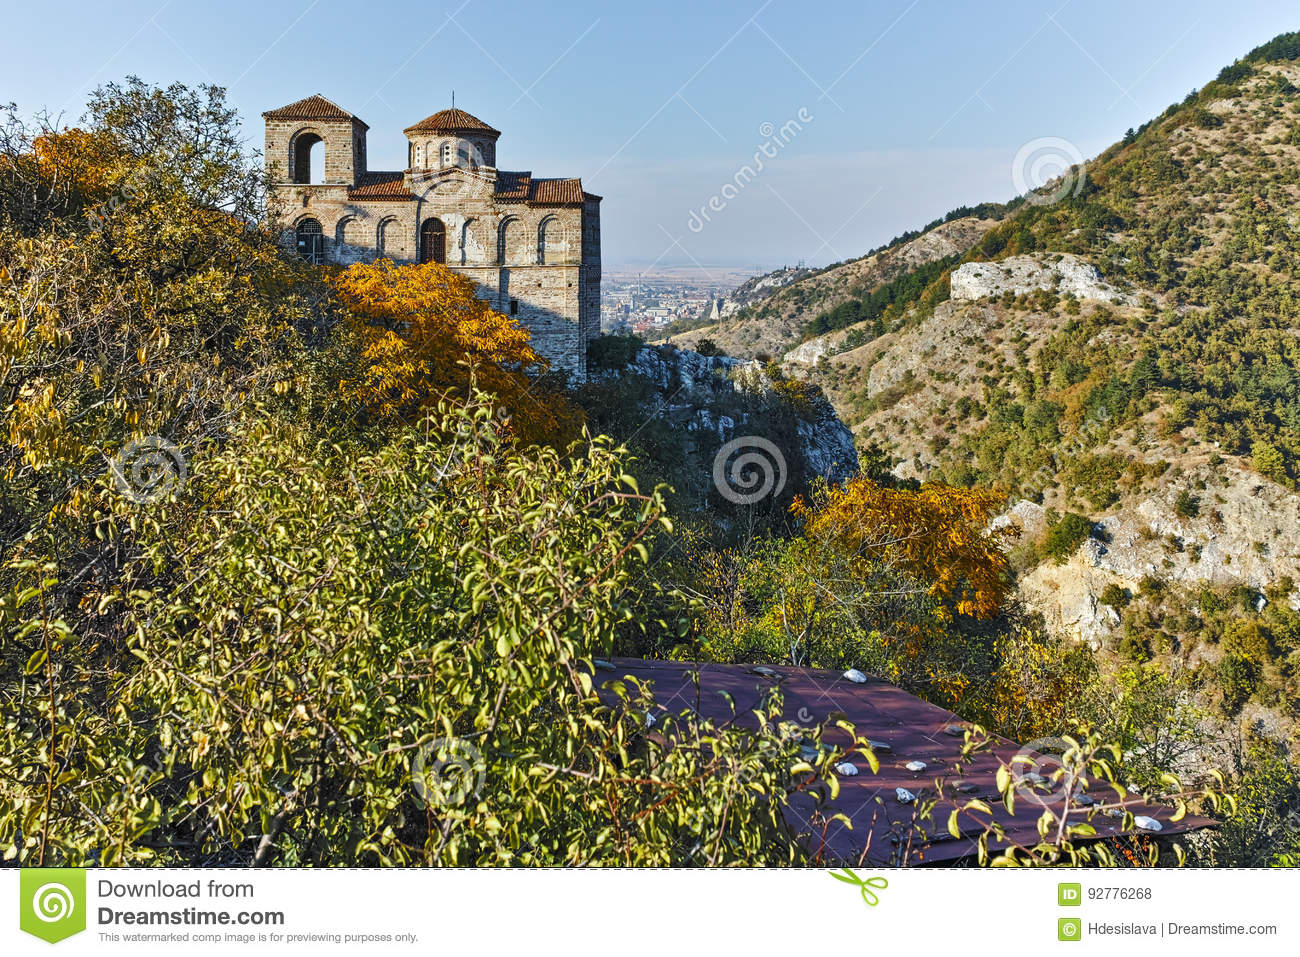 ASENOVGRAD, BULGARIA - 1 OCTOBER 2016: Autumn view of Asen`s Fortress, Asenovgrad, Bulgaria